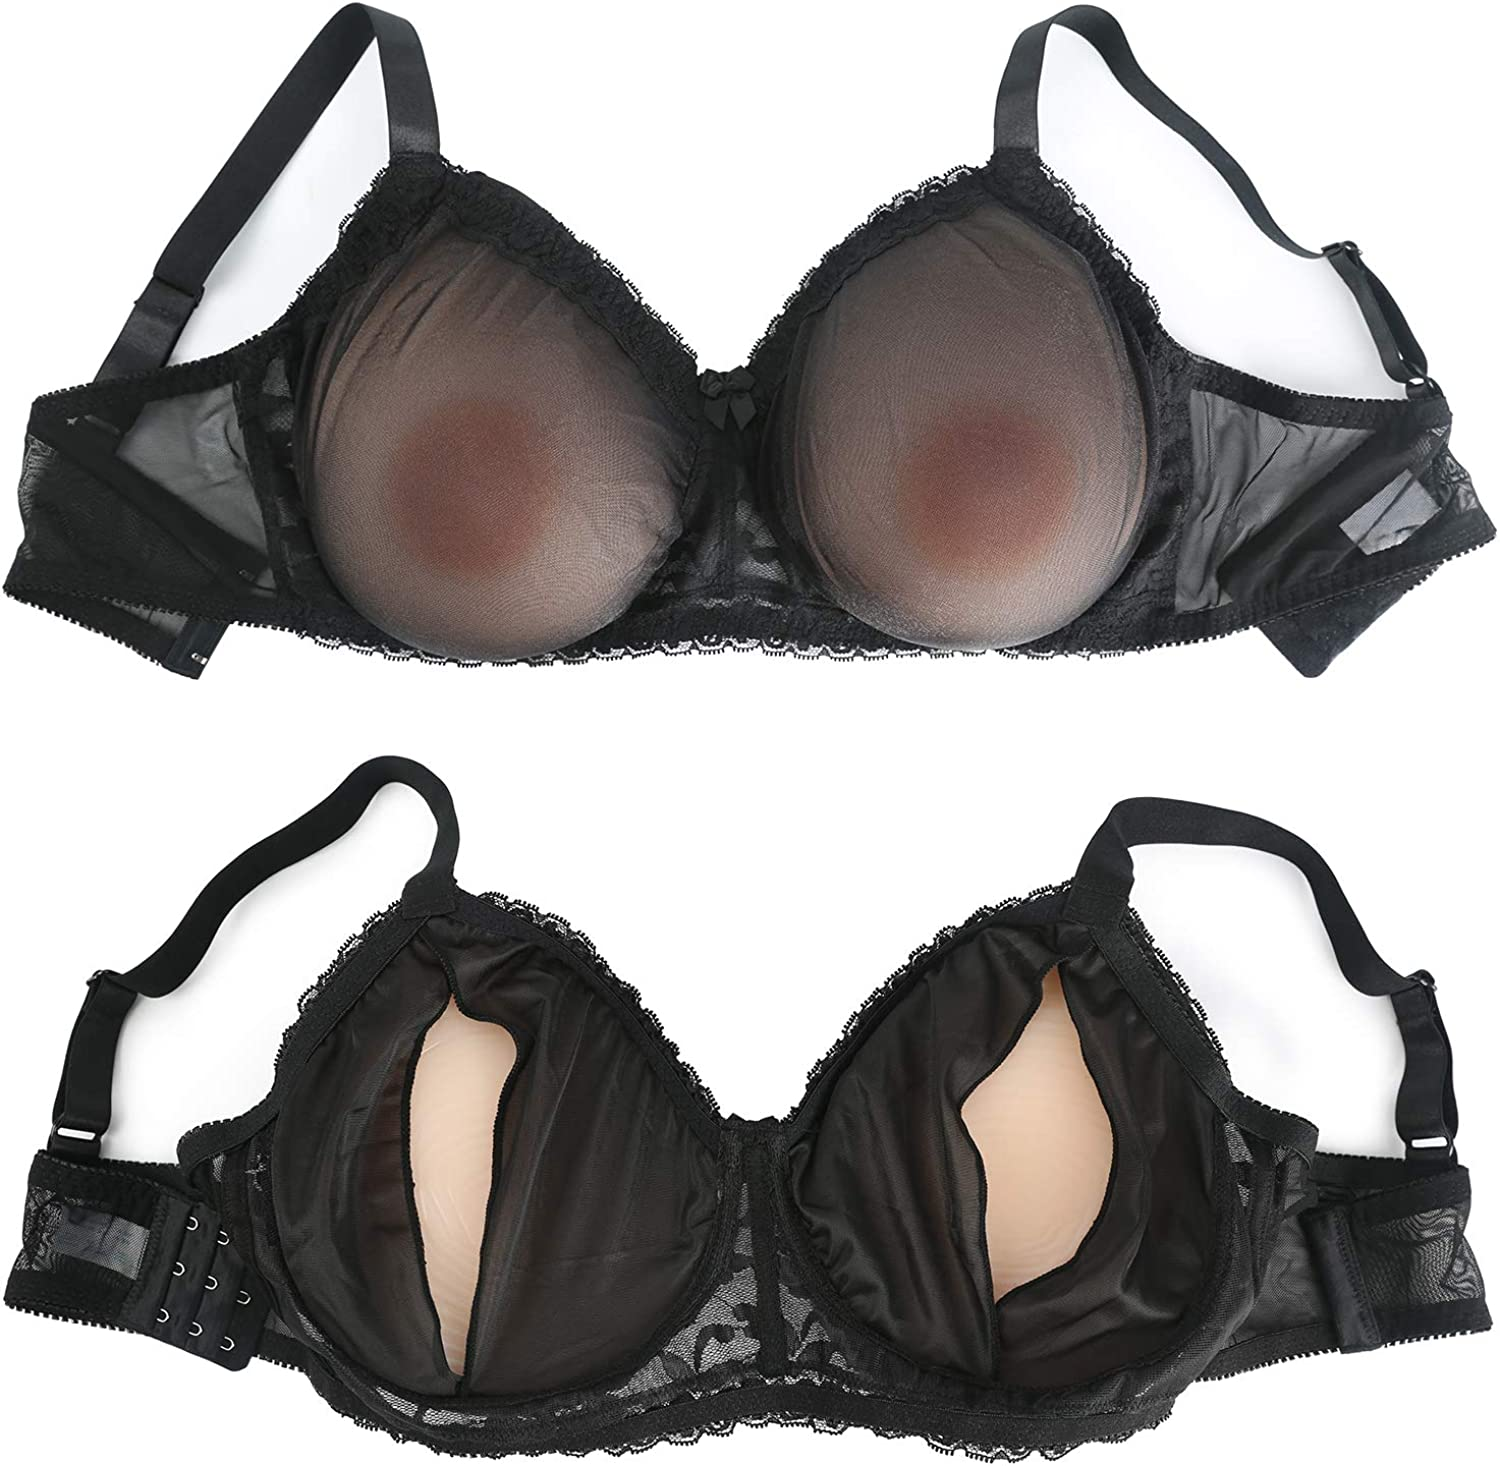 Vollence See-Through Pocket Bra for Silicone Breast Forms Fake Boobs Mastectomy